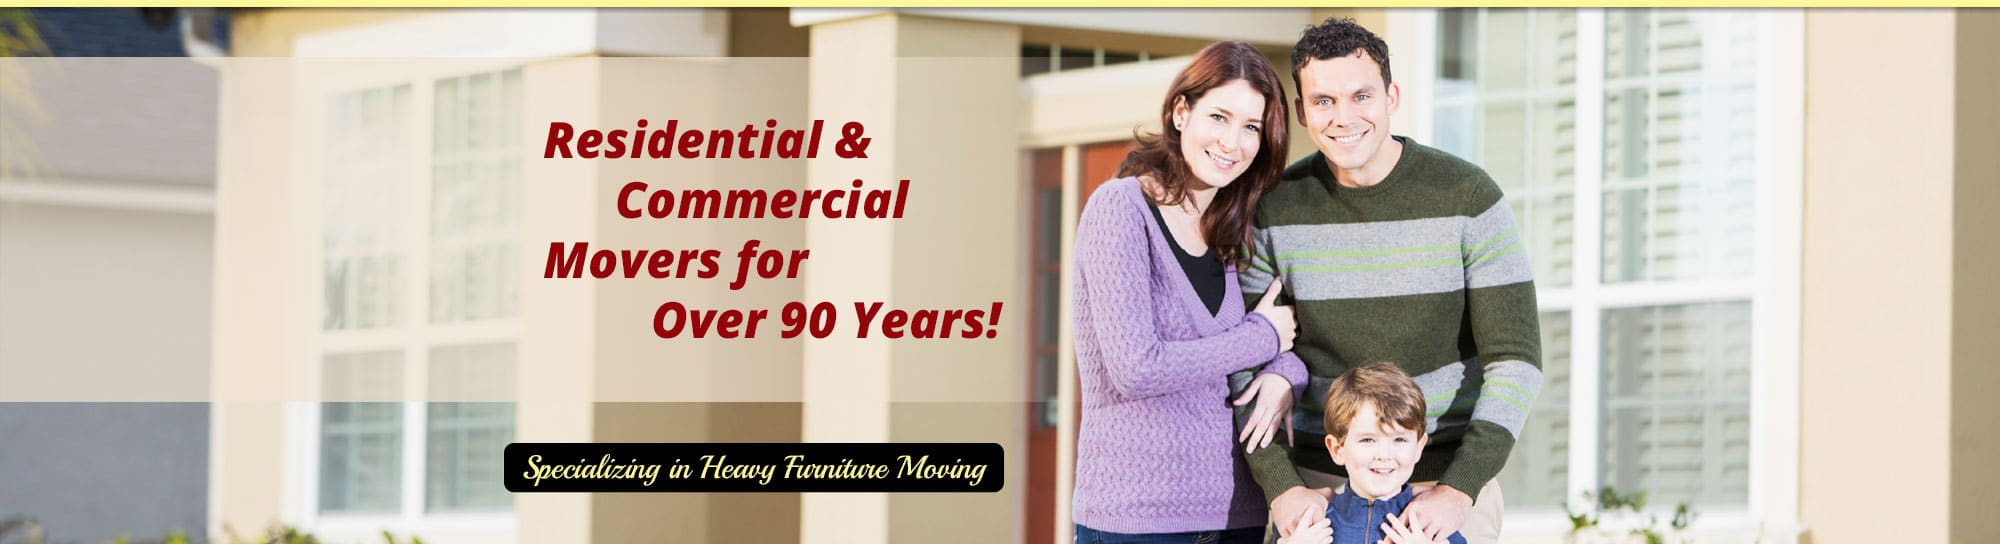 Residential & Commercial Movers for Over 90 years Specializing in Heavy Furniture Moving